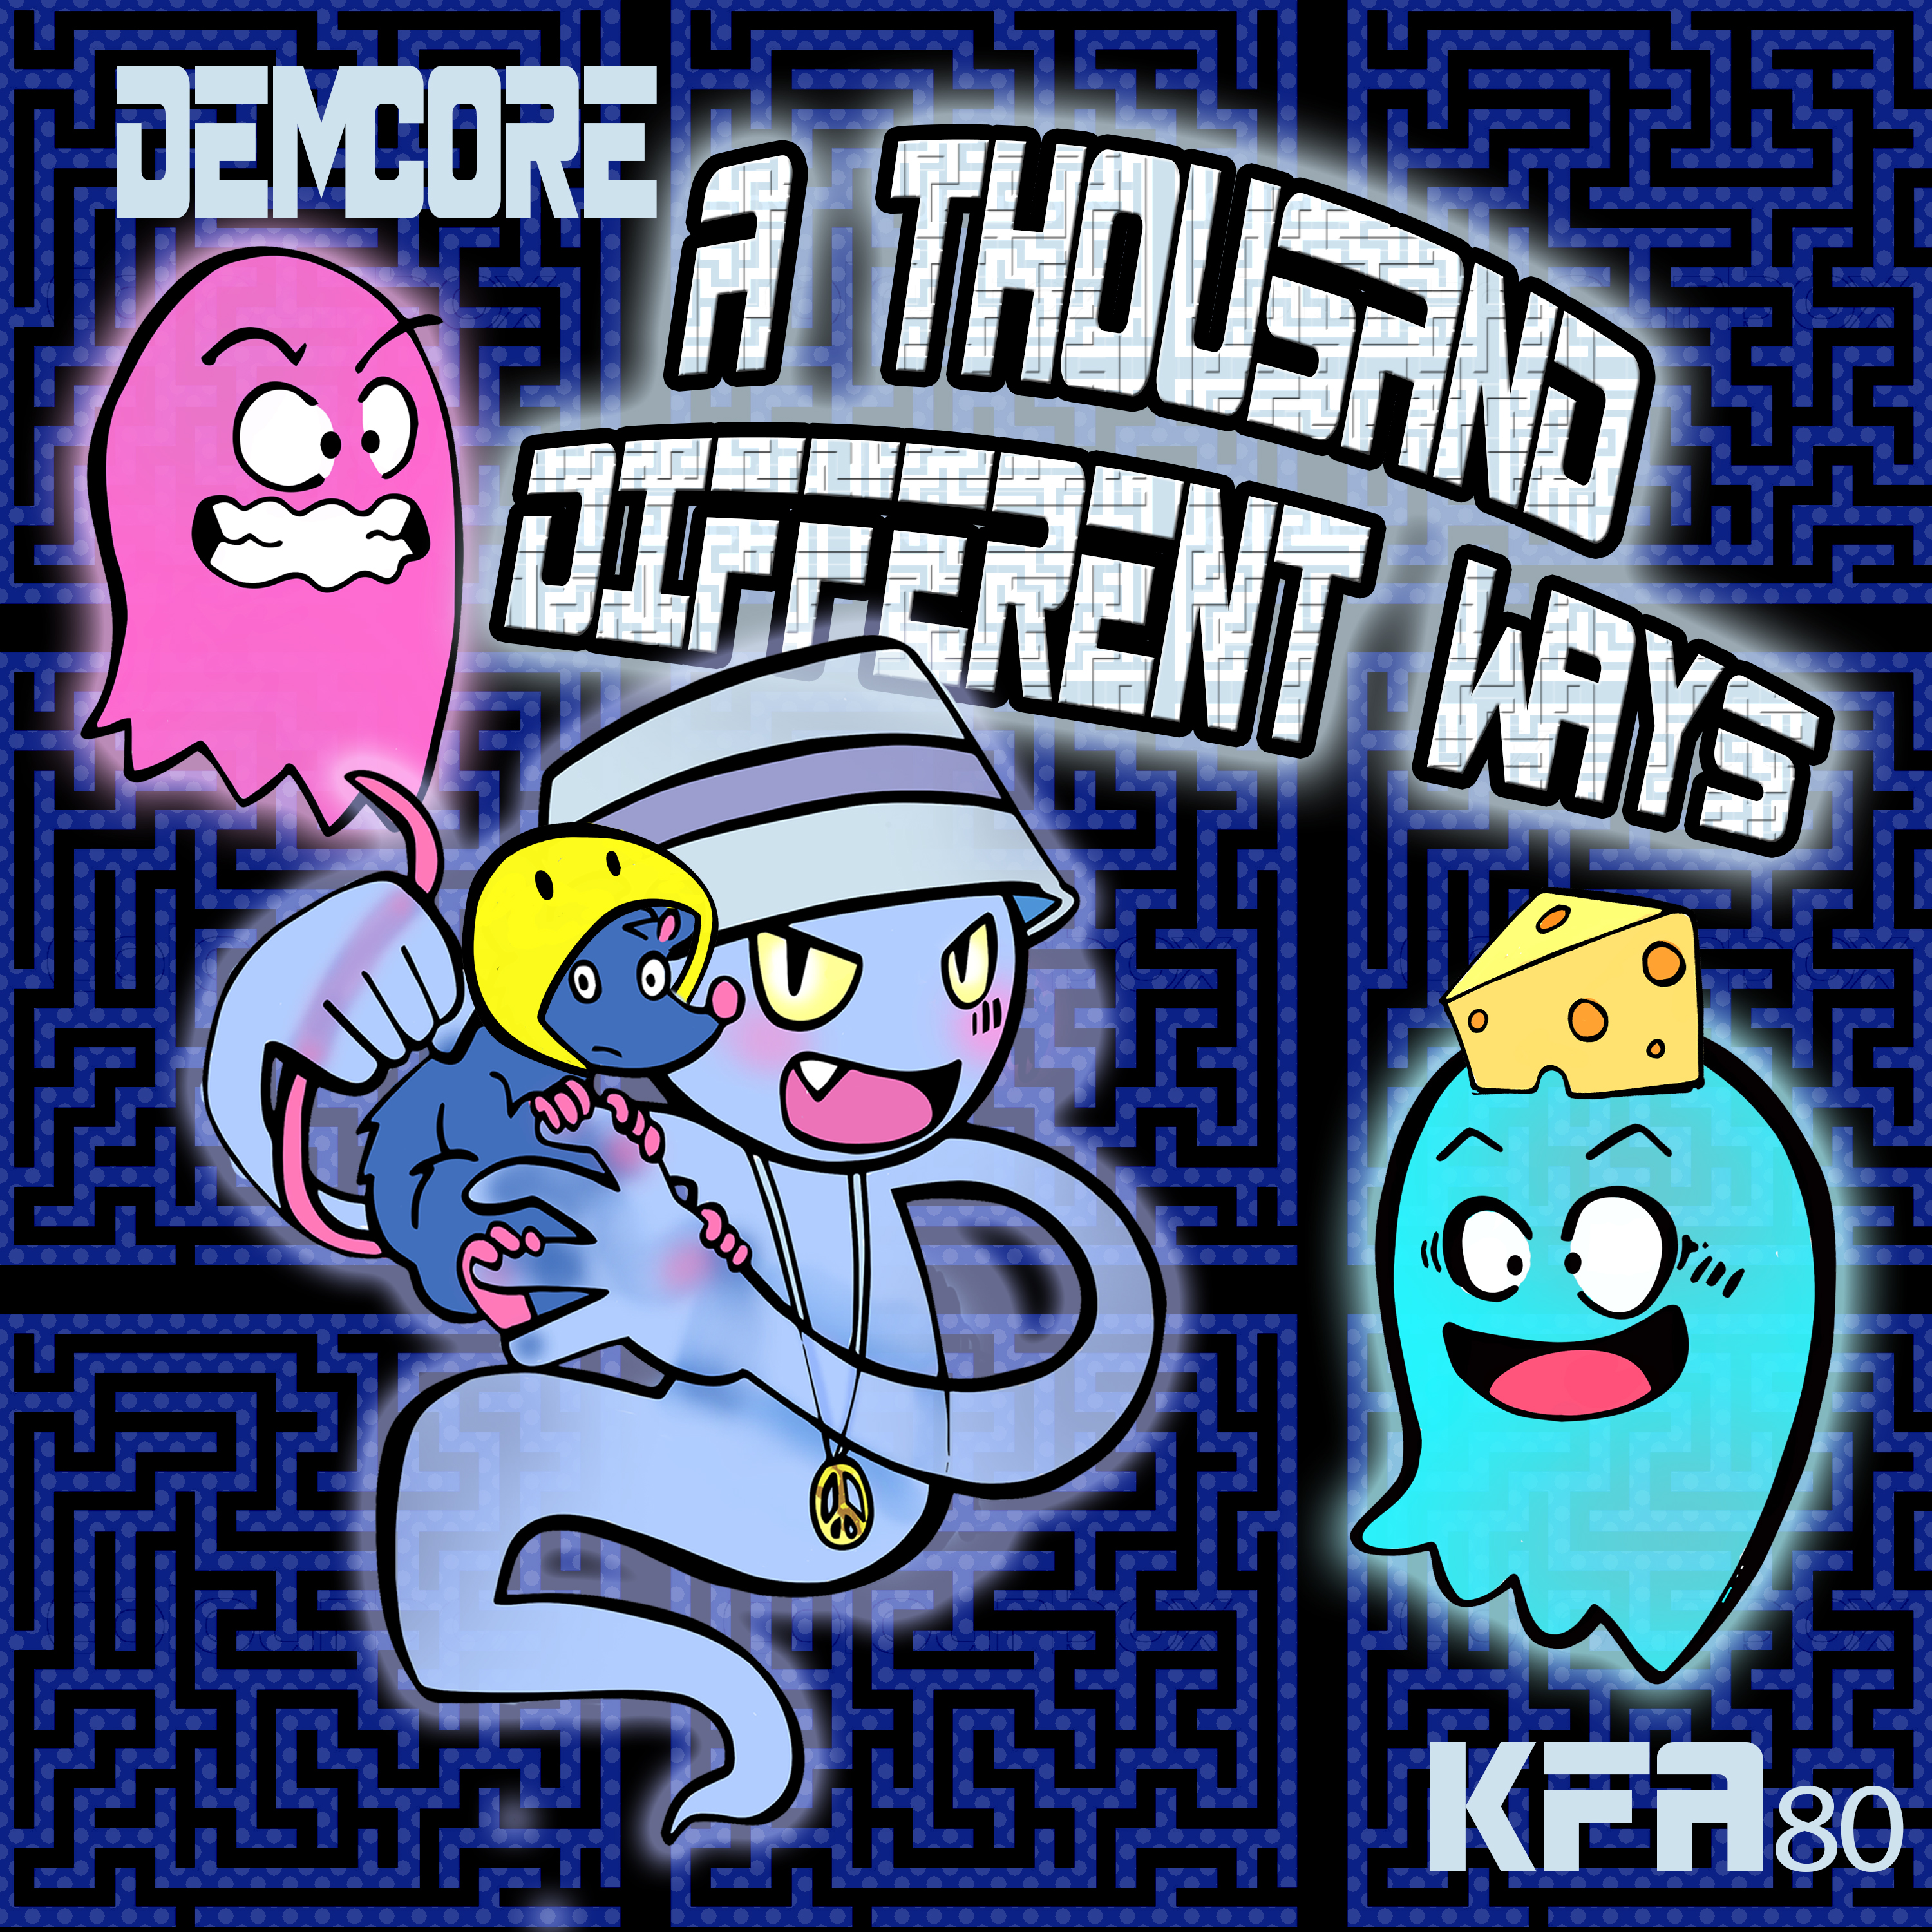 [KFA080] Demcore - A Thousand Different Ways EP (Digital Only)